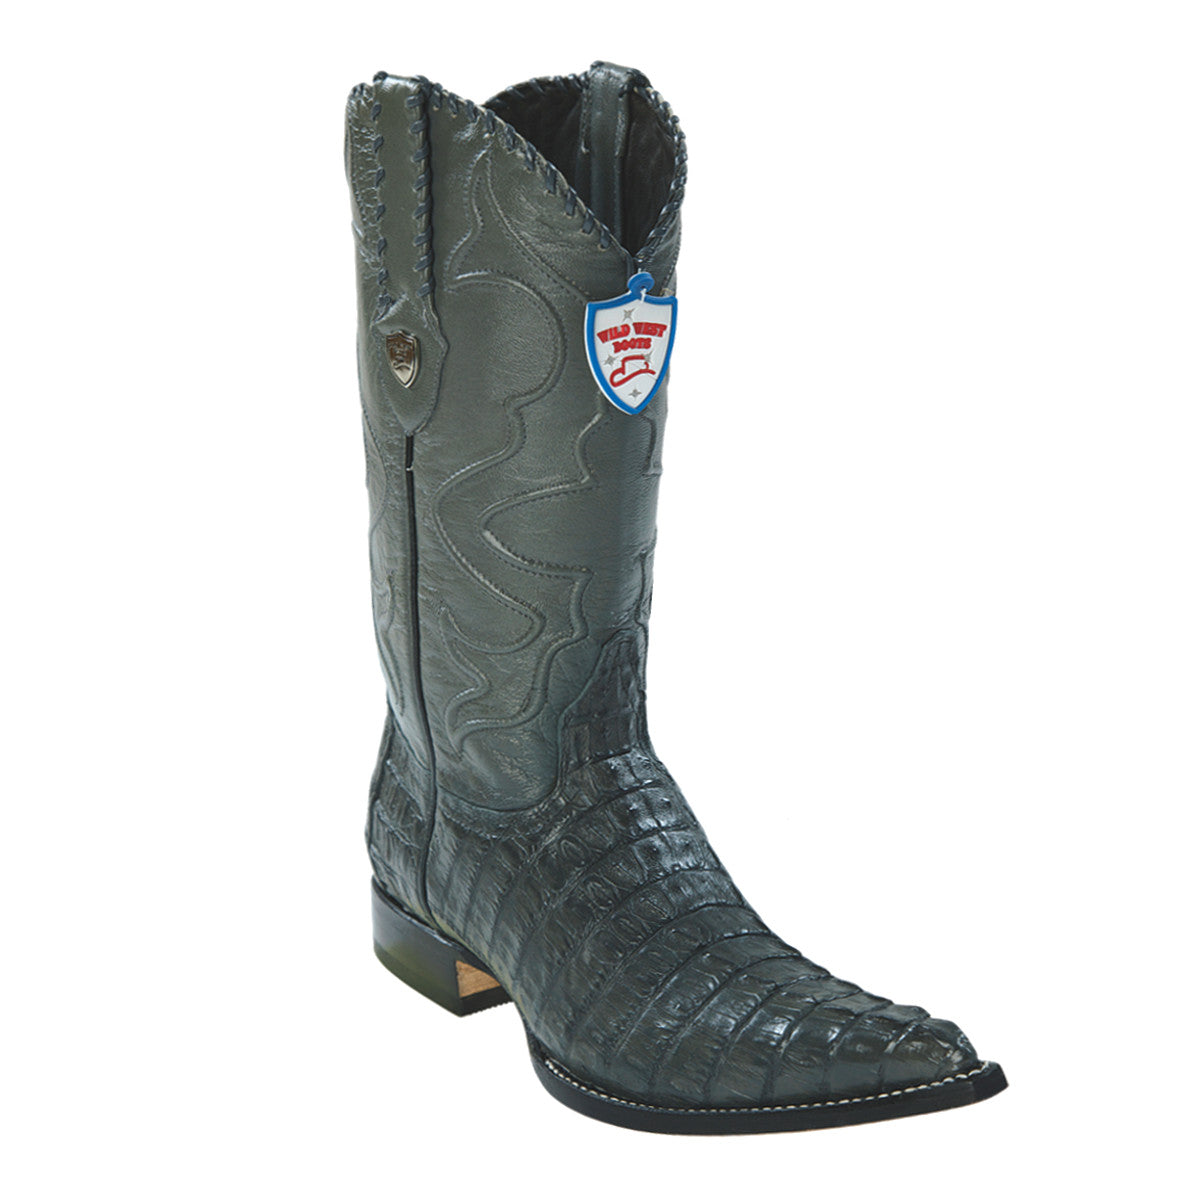 Wild West Boots H95 3x Toe Caiman Tail - Grey